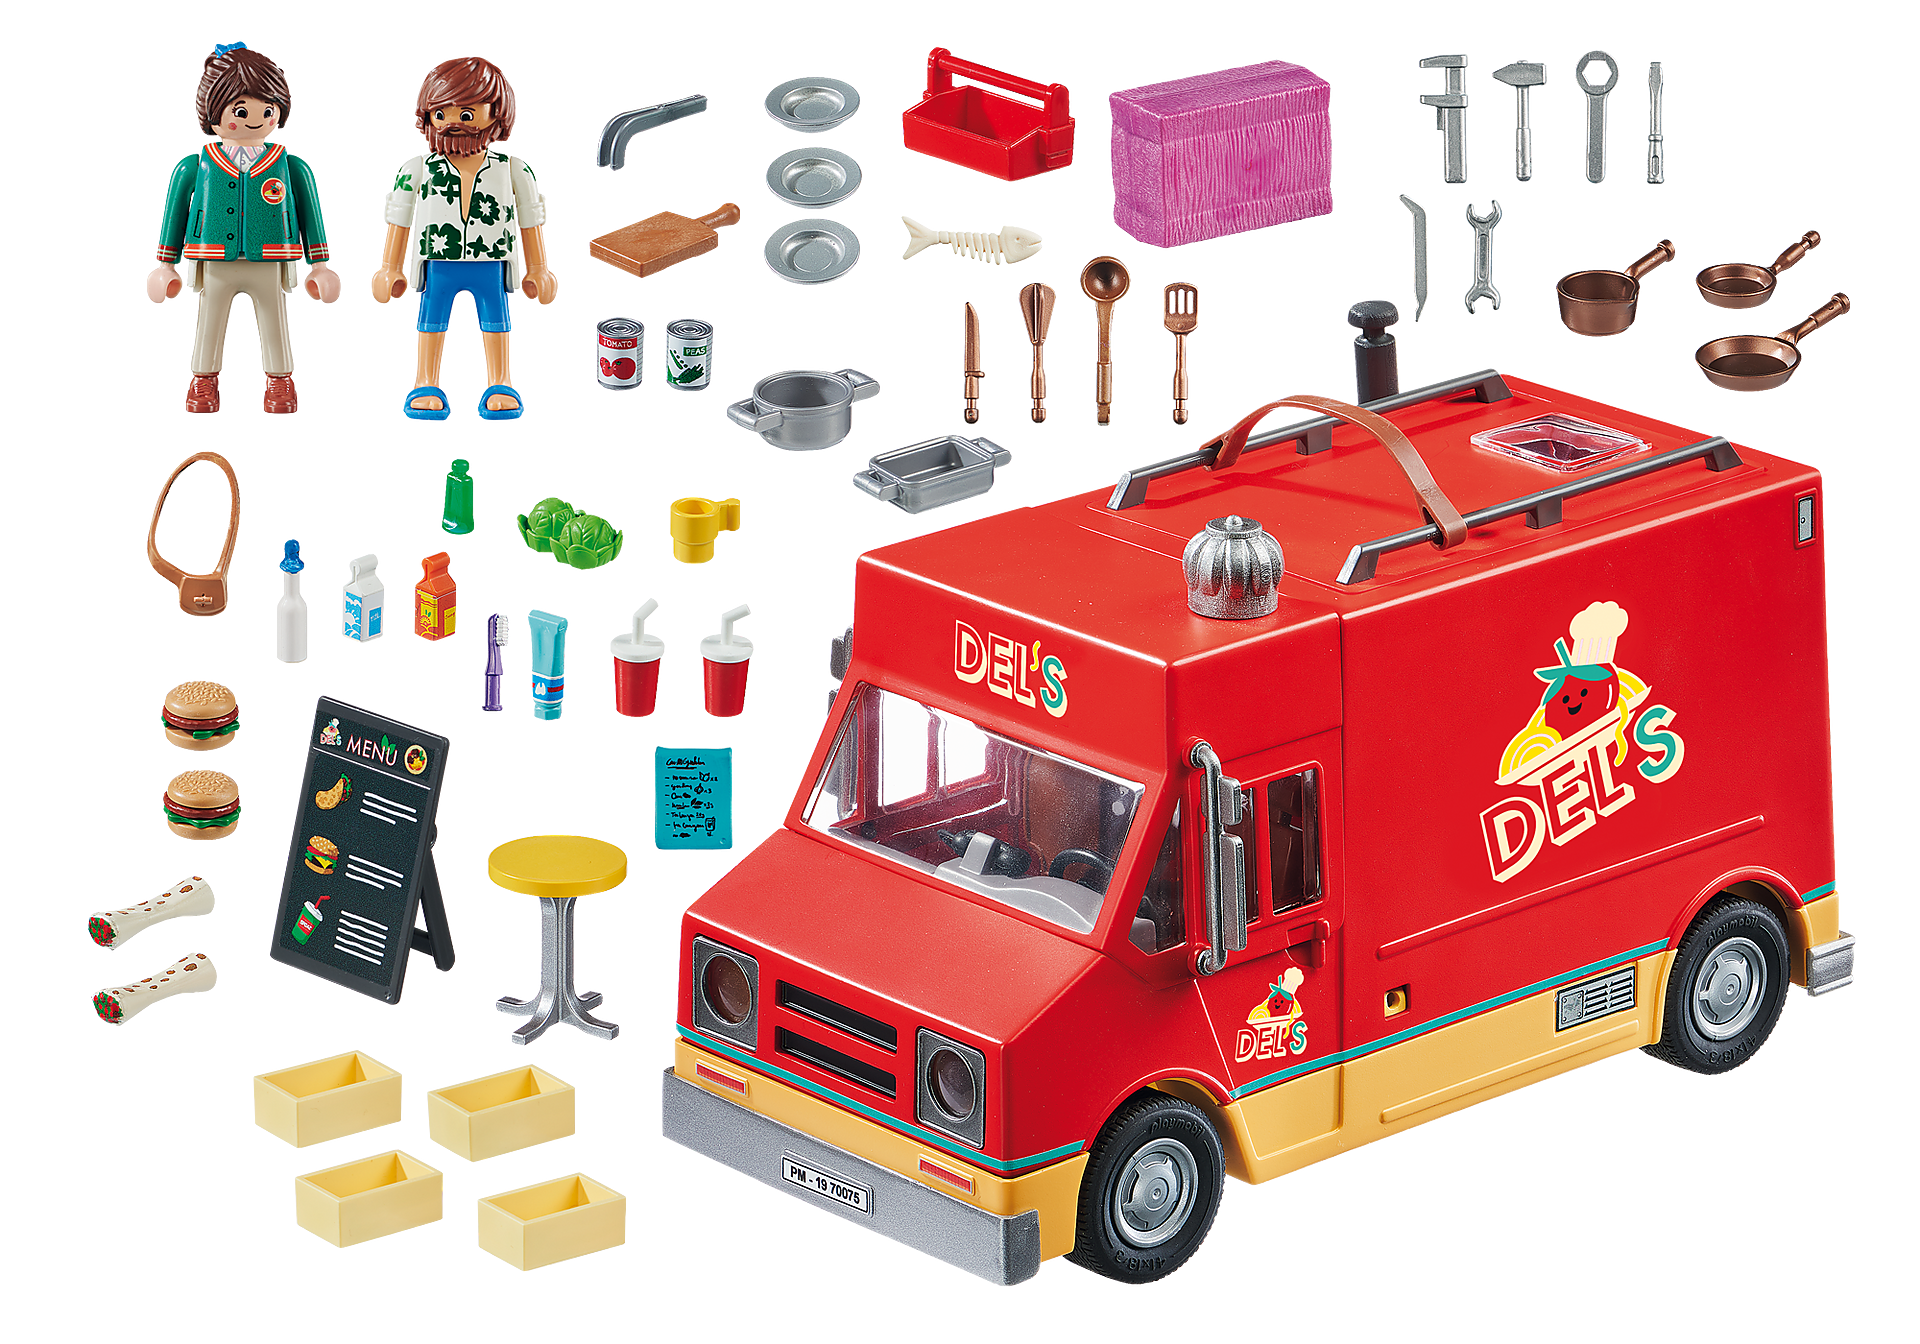 70075 PLAYMOBIL: THE MOVIE Food Truck Del zoom image3